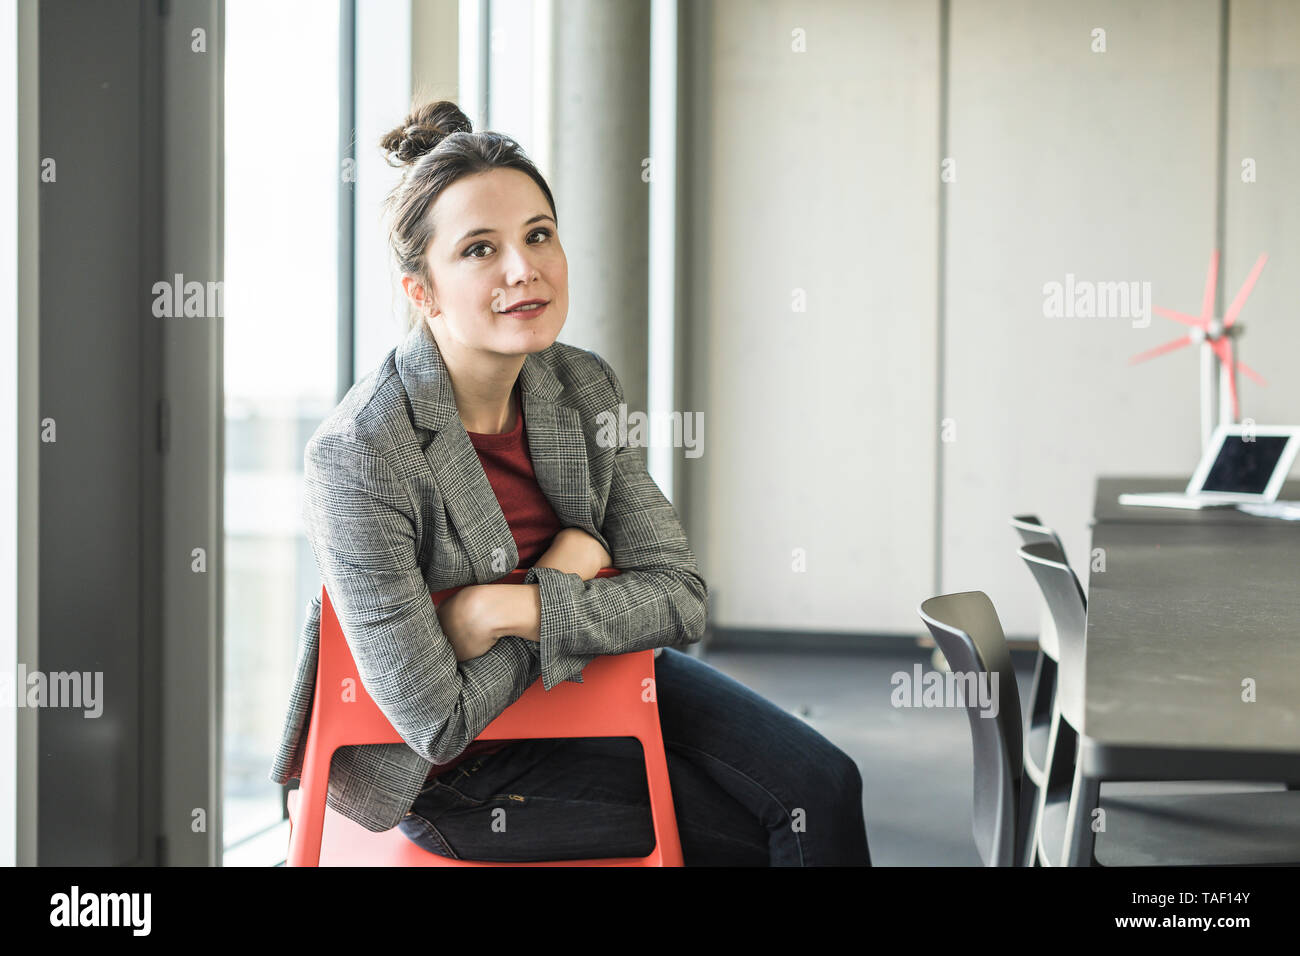 Portrait of smiling businesswoman sitting on chair in office - Stock Image